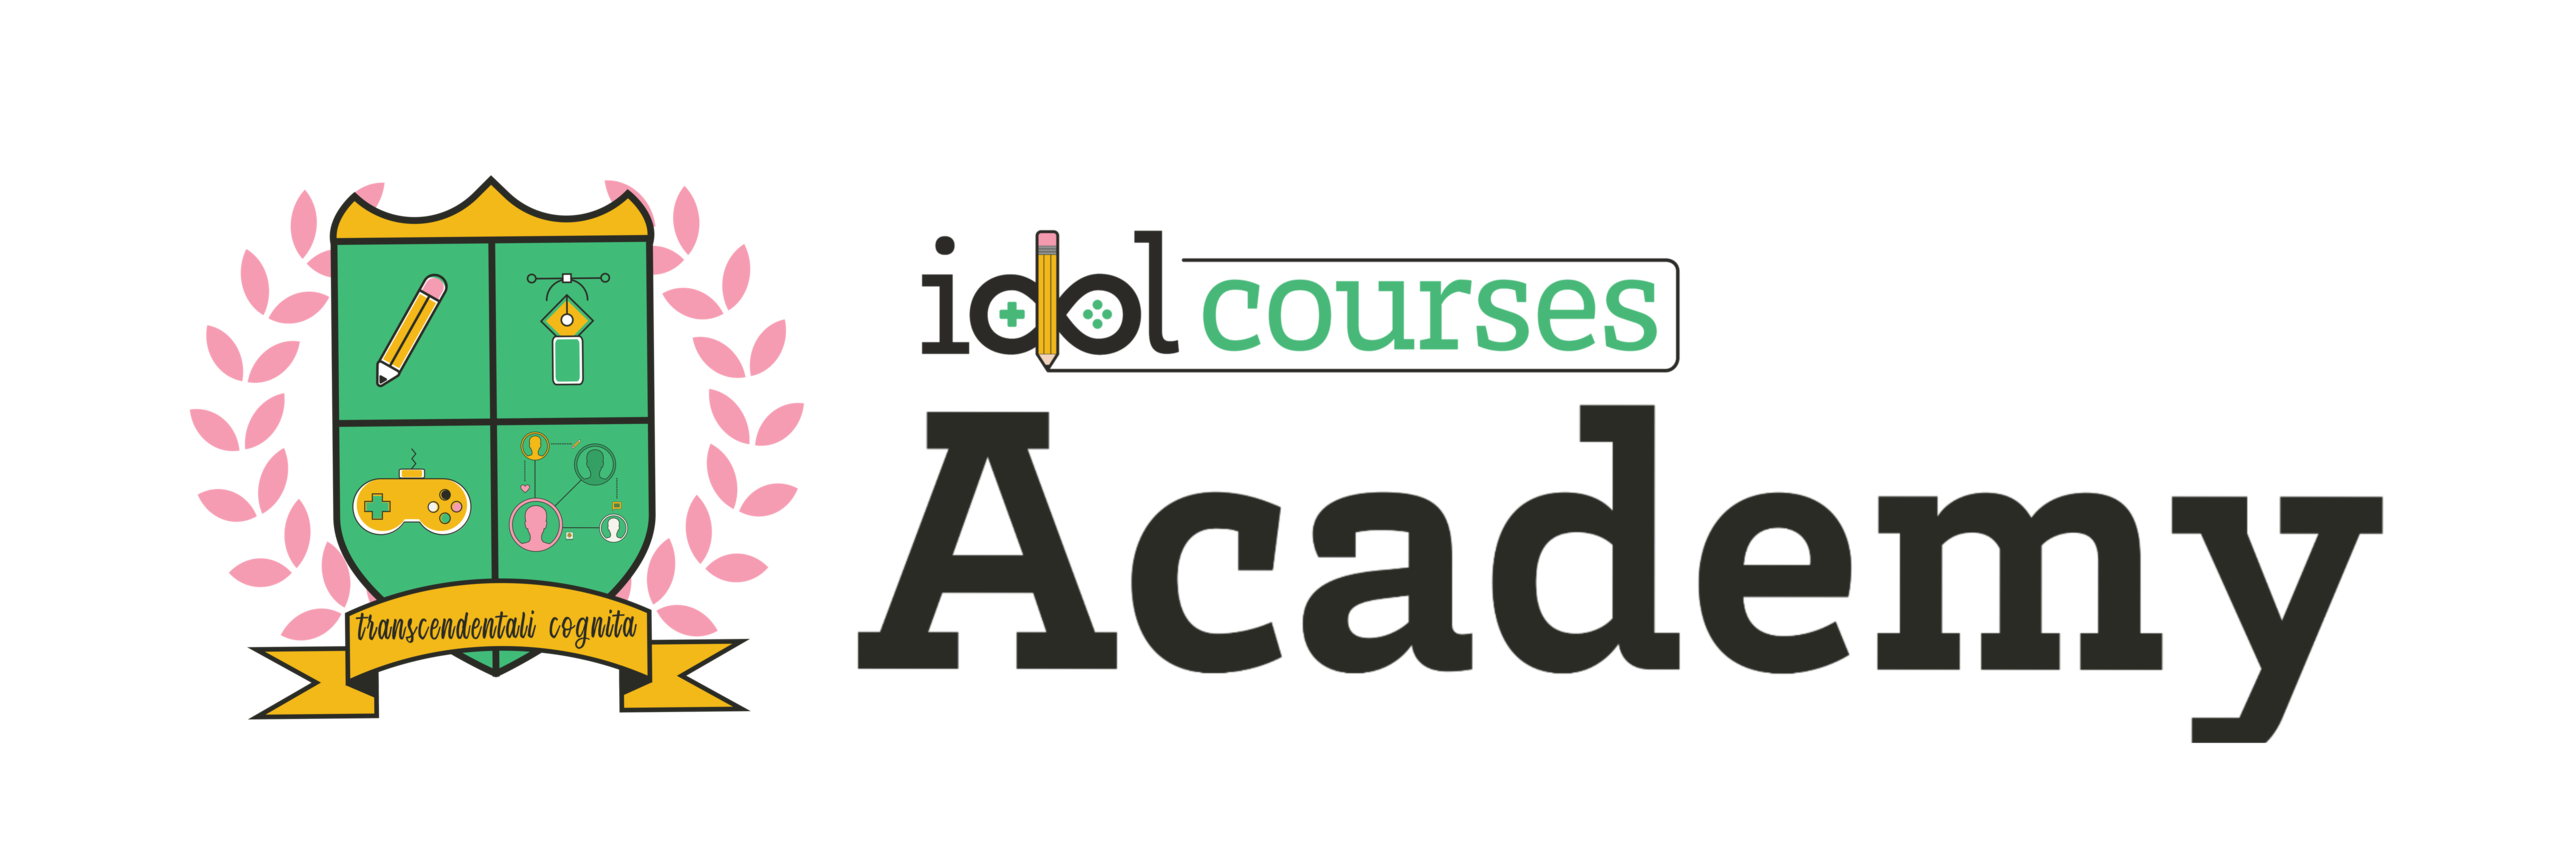 Enroll In The Idol Courses Academy